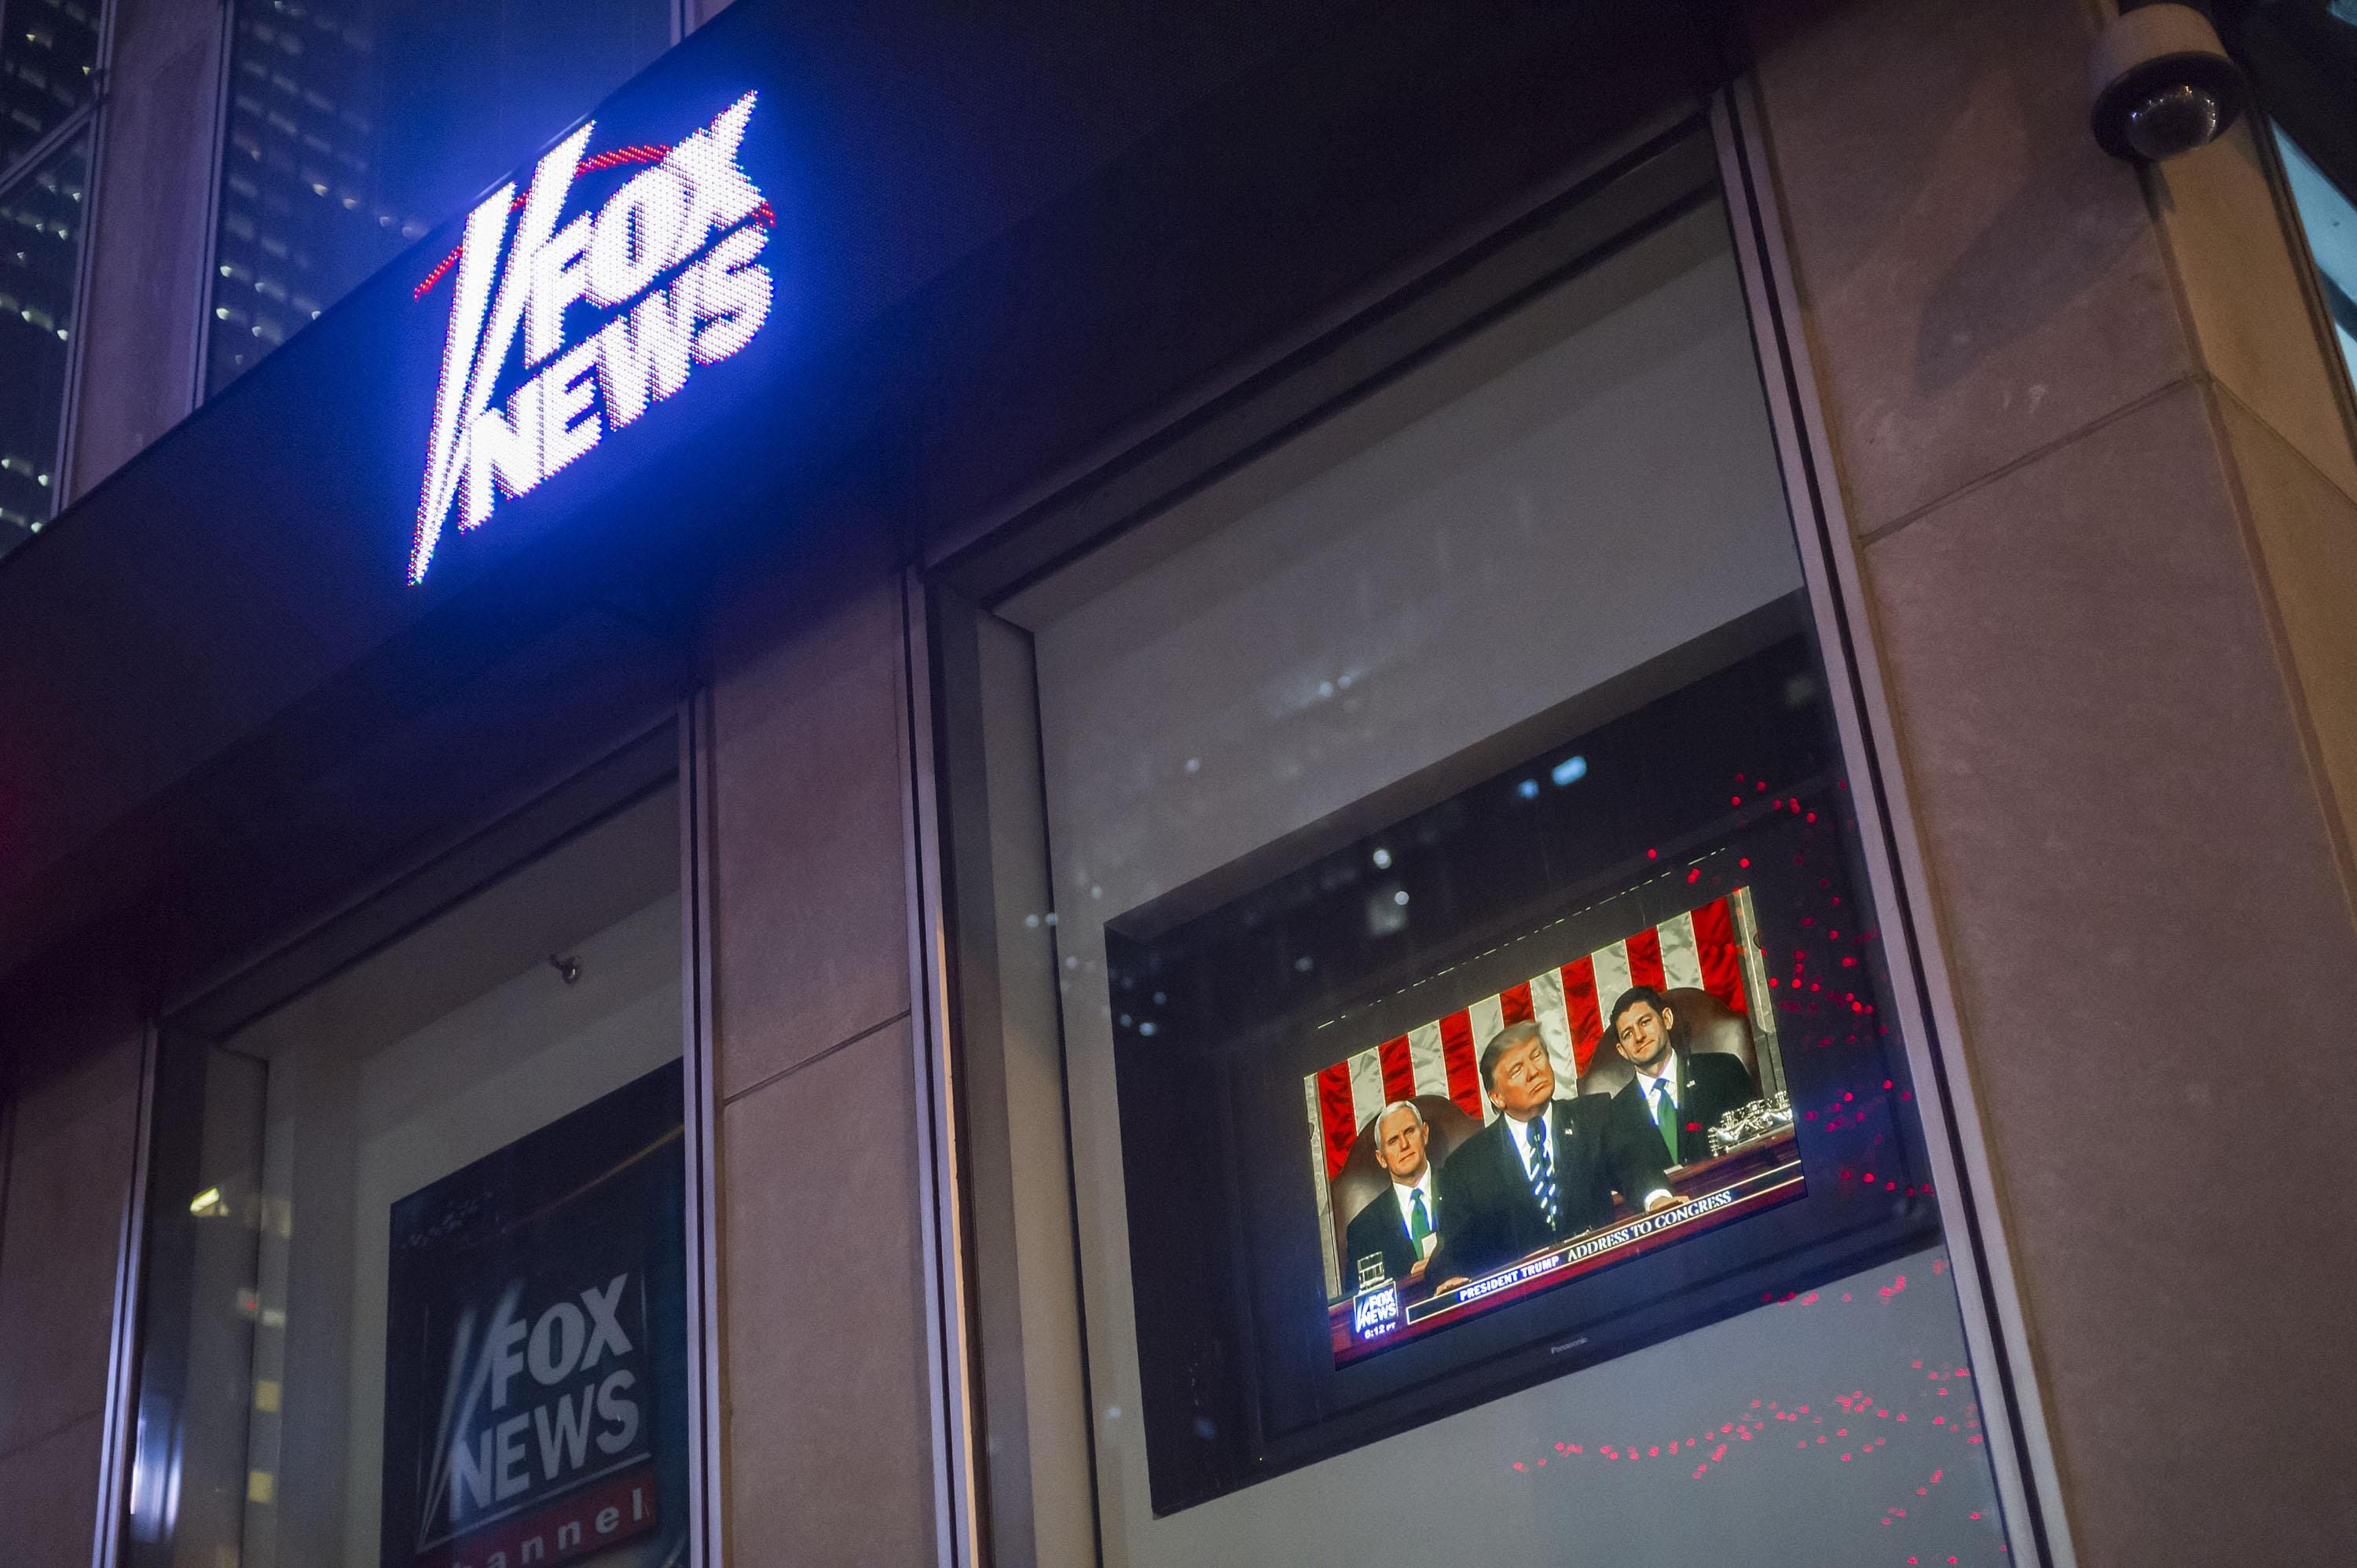 Dominion Voting sues Fox for $1.6B over 2020 election claims 2